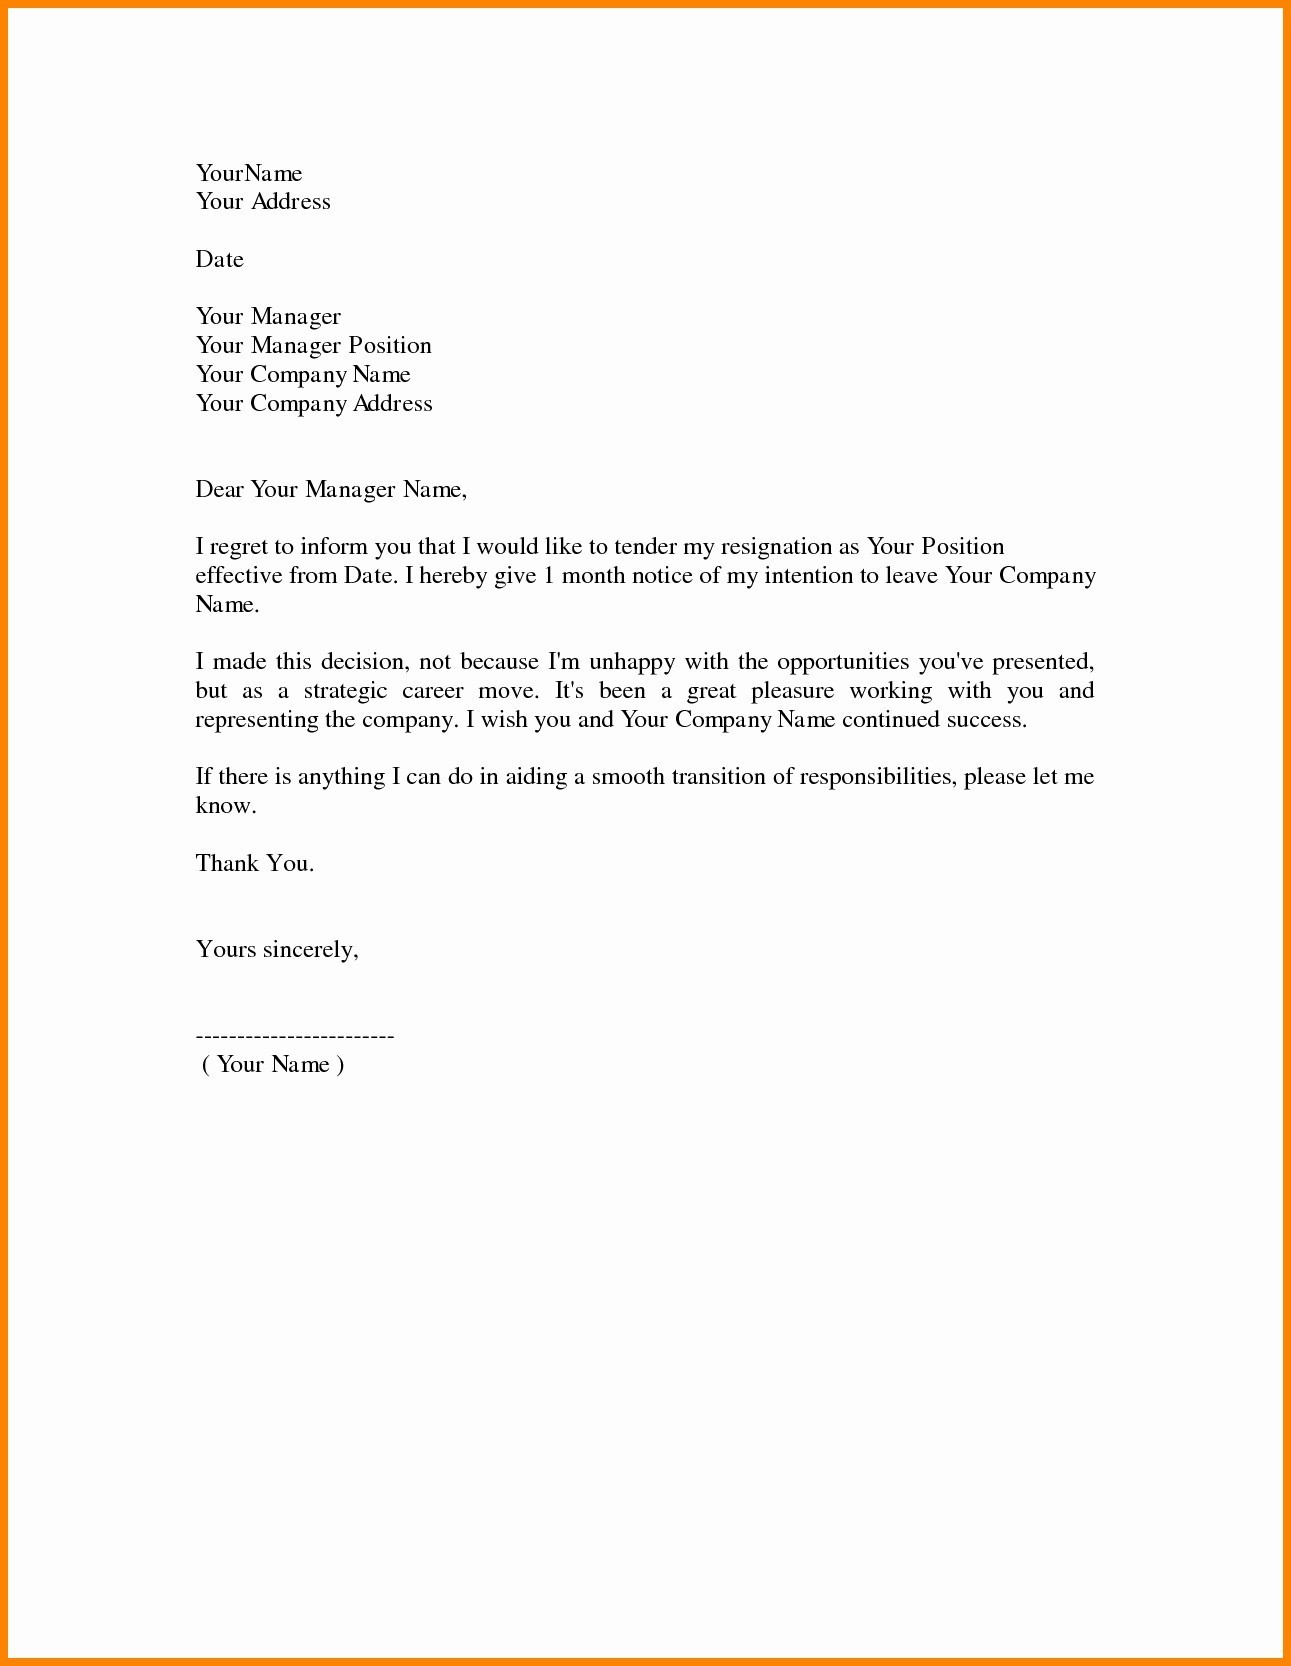 resignation letter template doc example-Sample Resignation Letter Template Doc Copy Samples Resignation Letters for Personal Reasons Save Sample Resignation 13-i